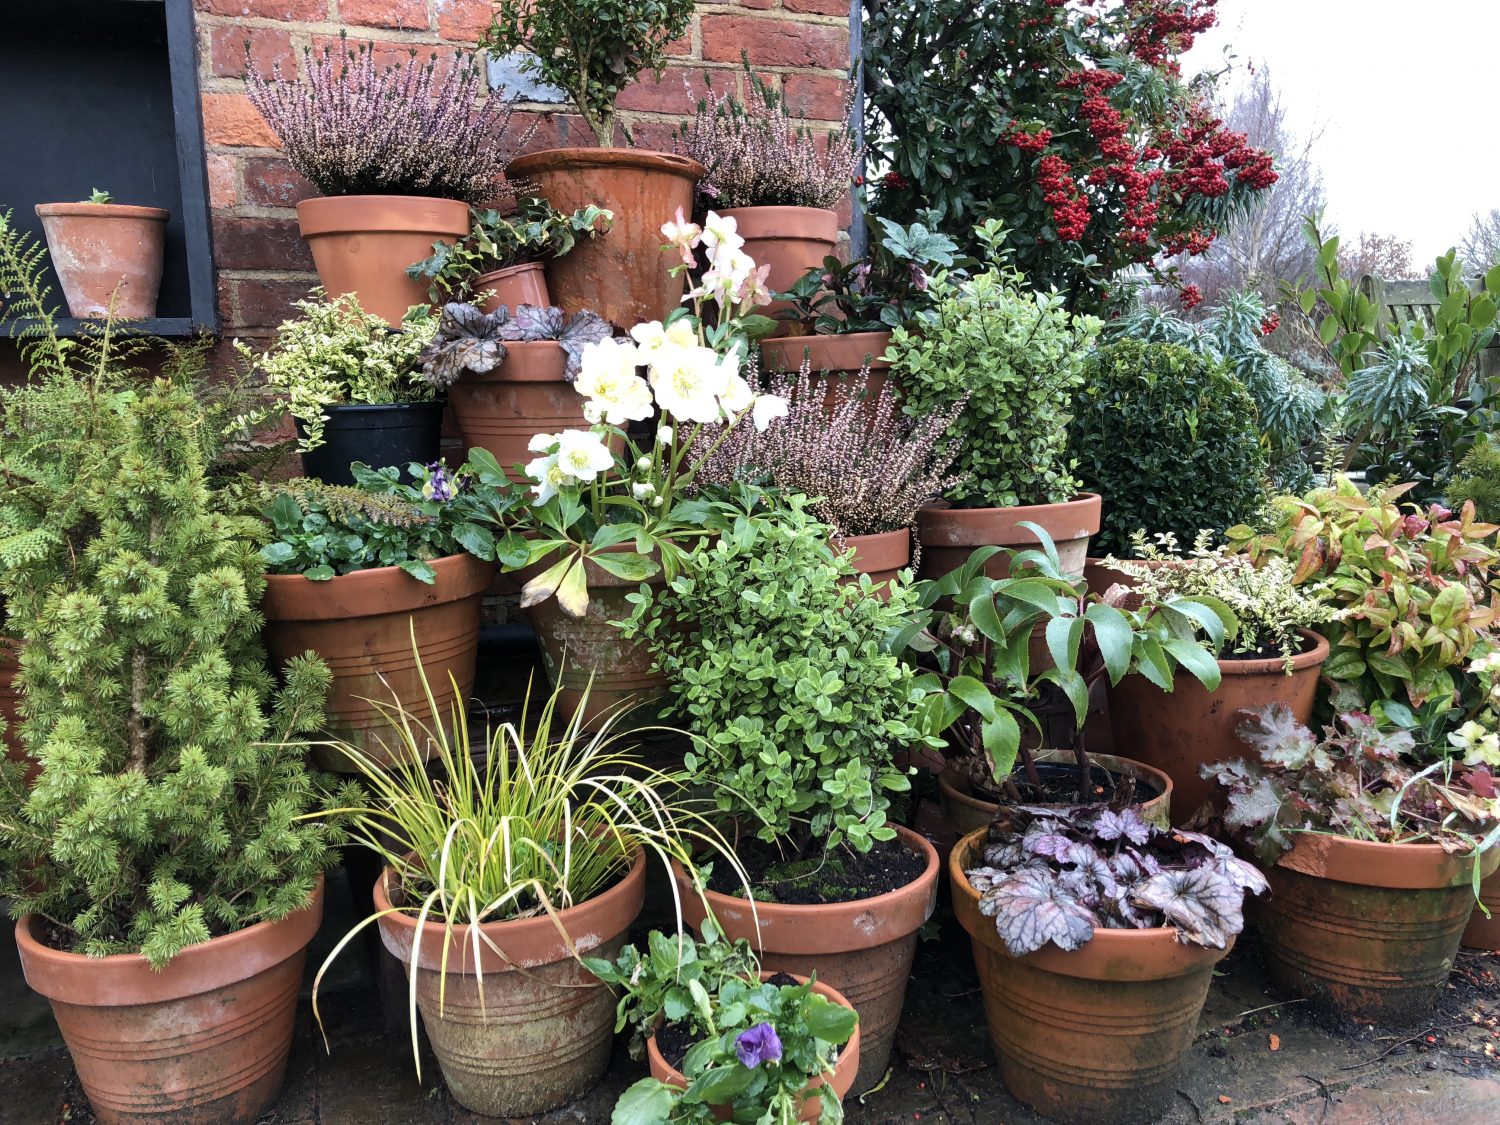 Pots cheer up a dull winter corner